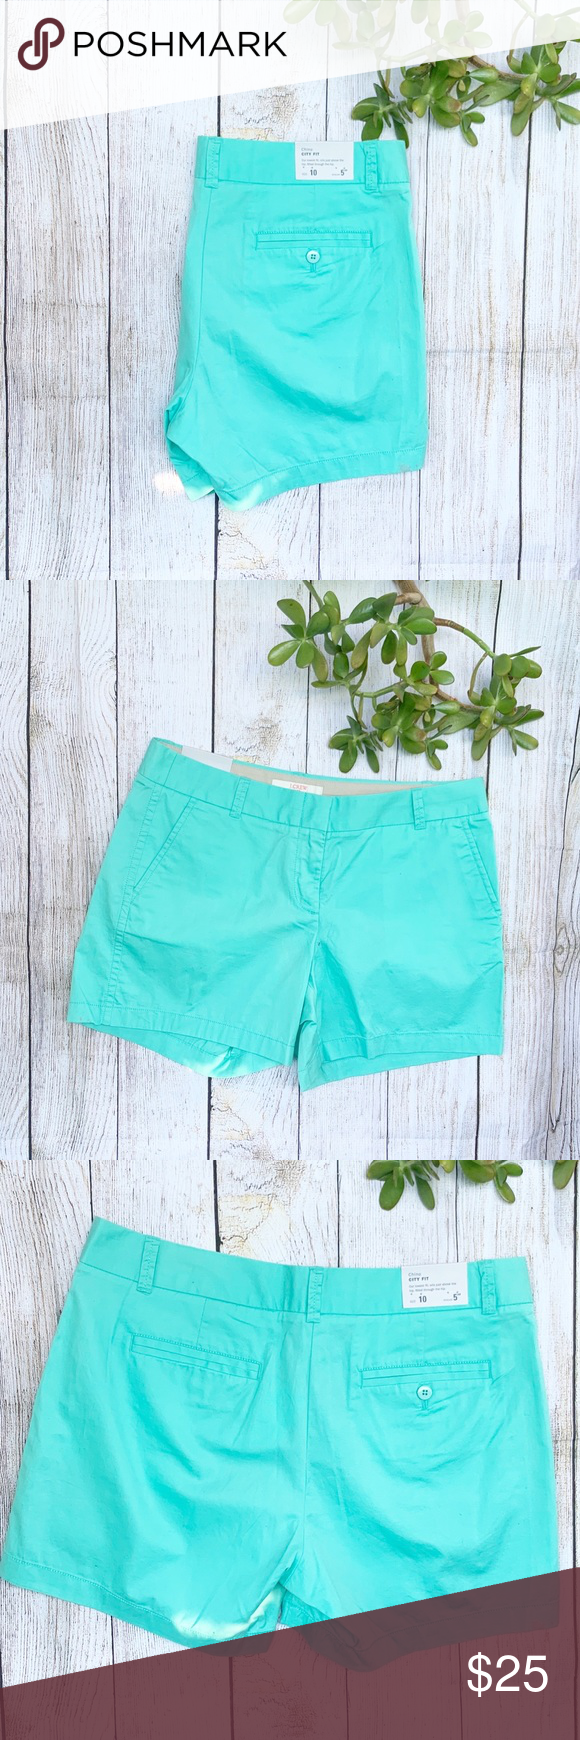 Flash Sale J Crew Chino City Fit Teal Shorts Clothes Design Turquoise Shorts Teal Shorts